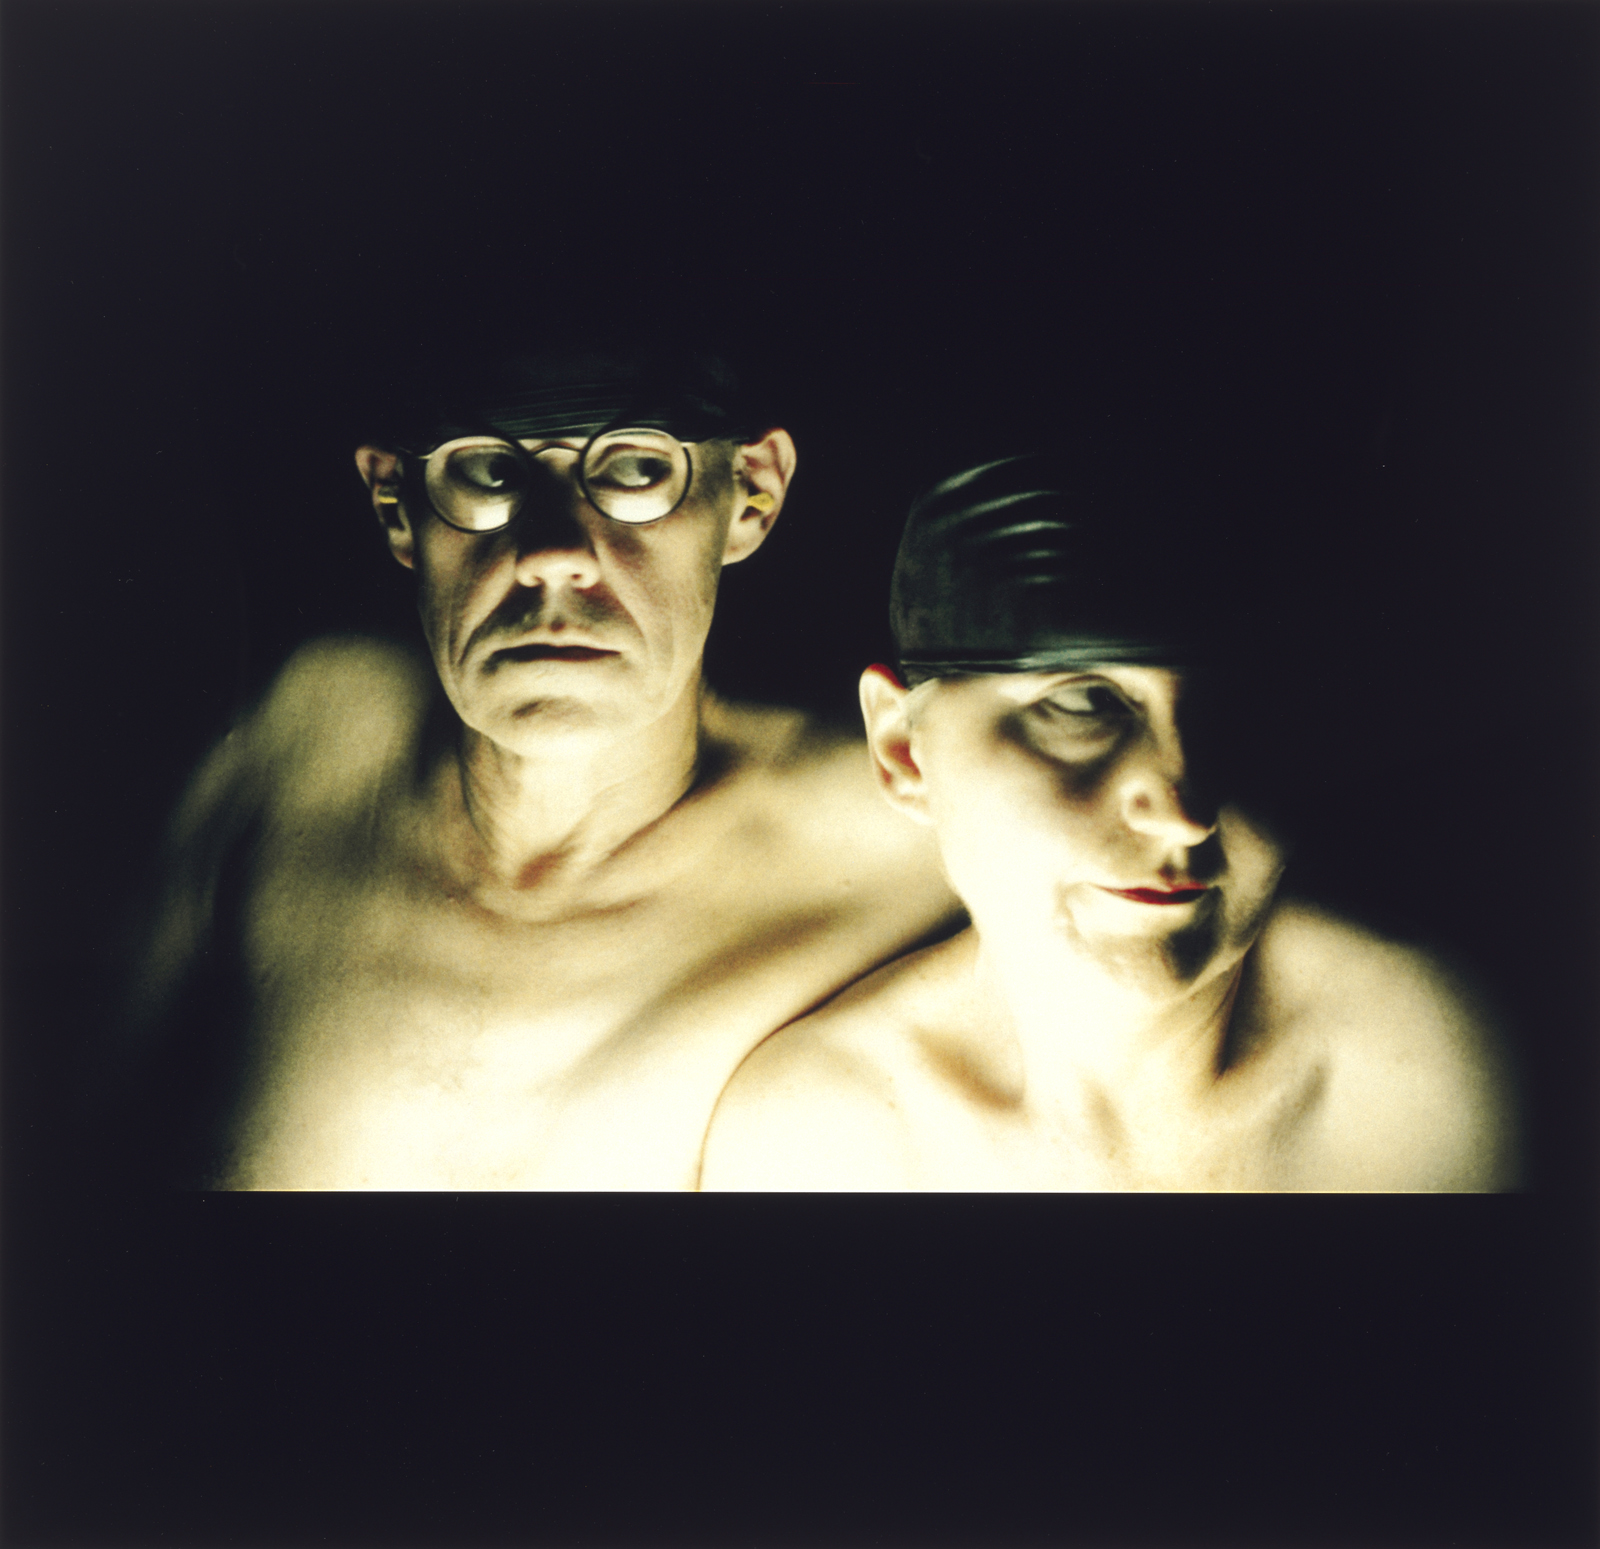 Farrell & Parkin,  Self Portrait #2  from the series  Self Portraits,  2003, Type C Colour photograph, 73 x 76 cm.